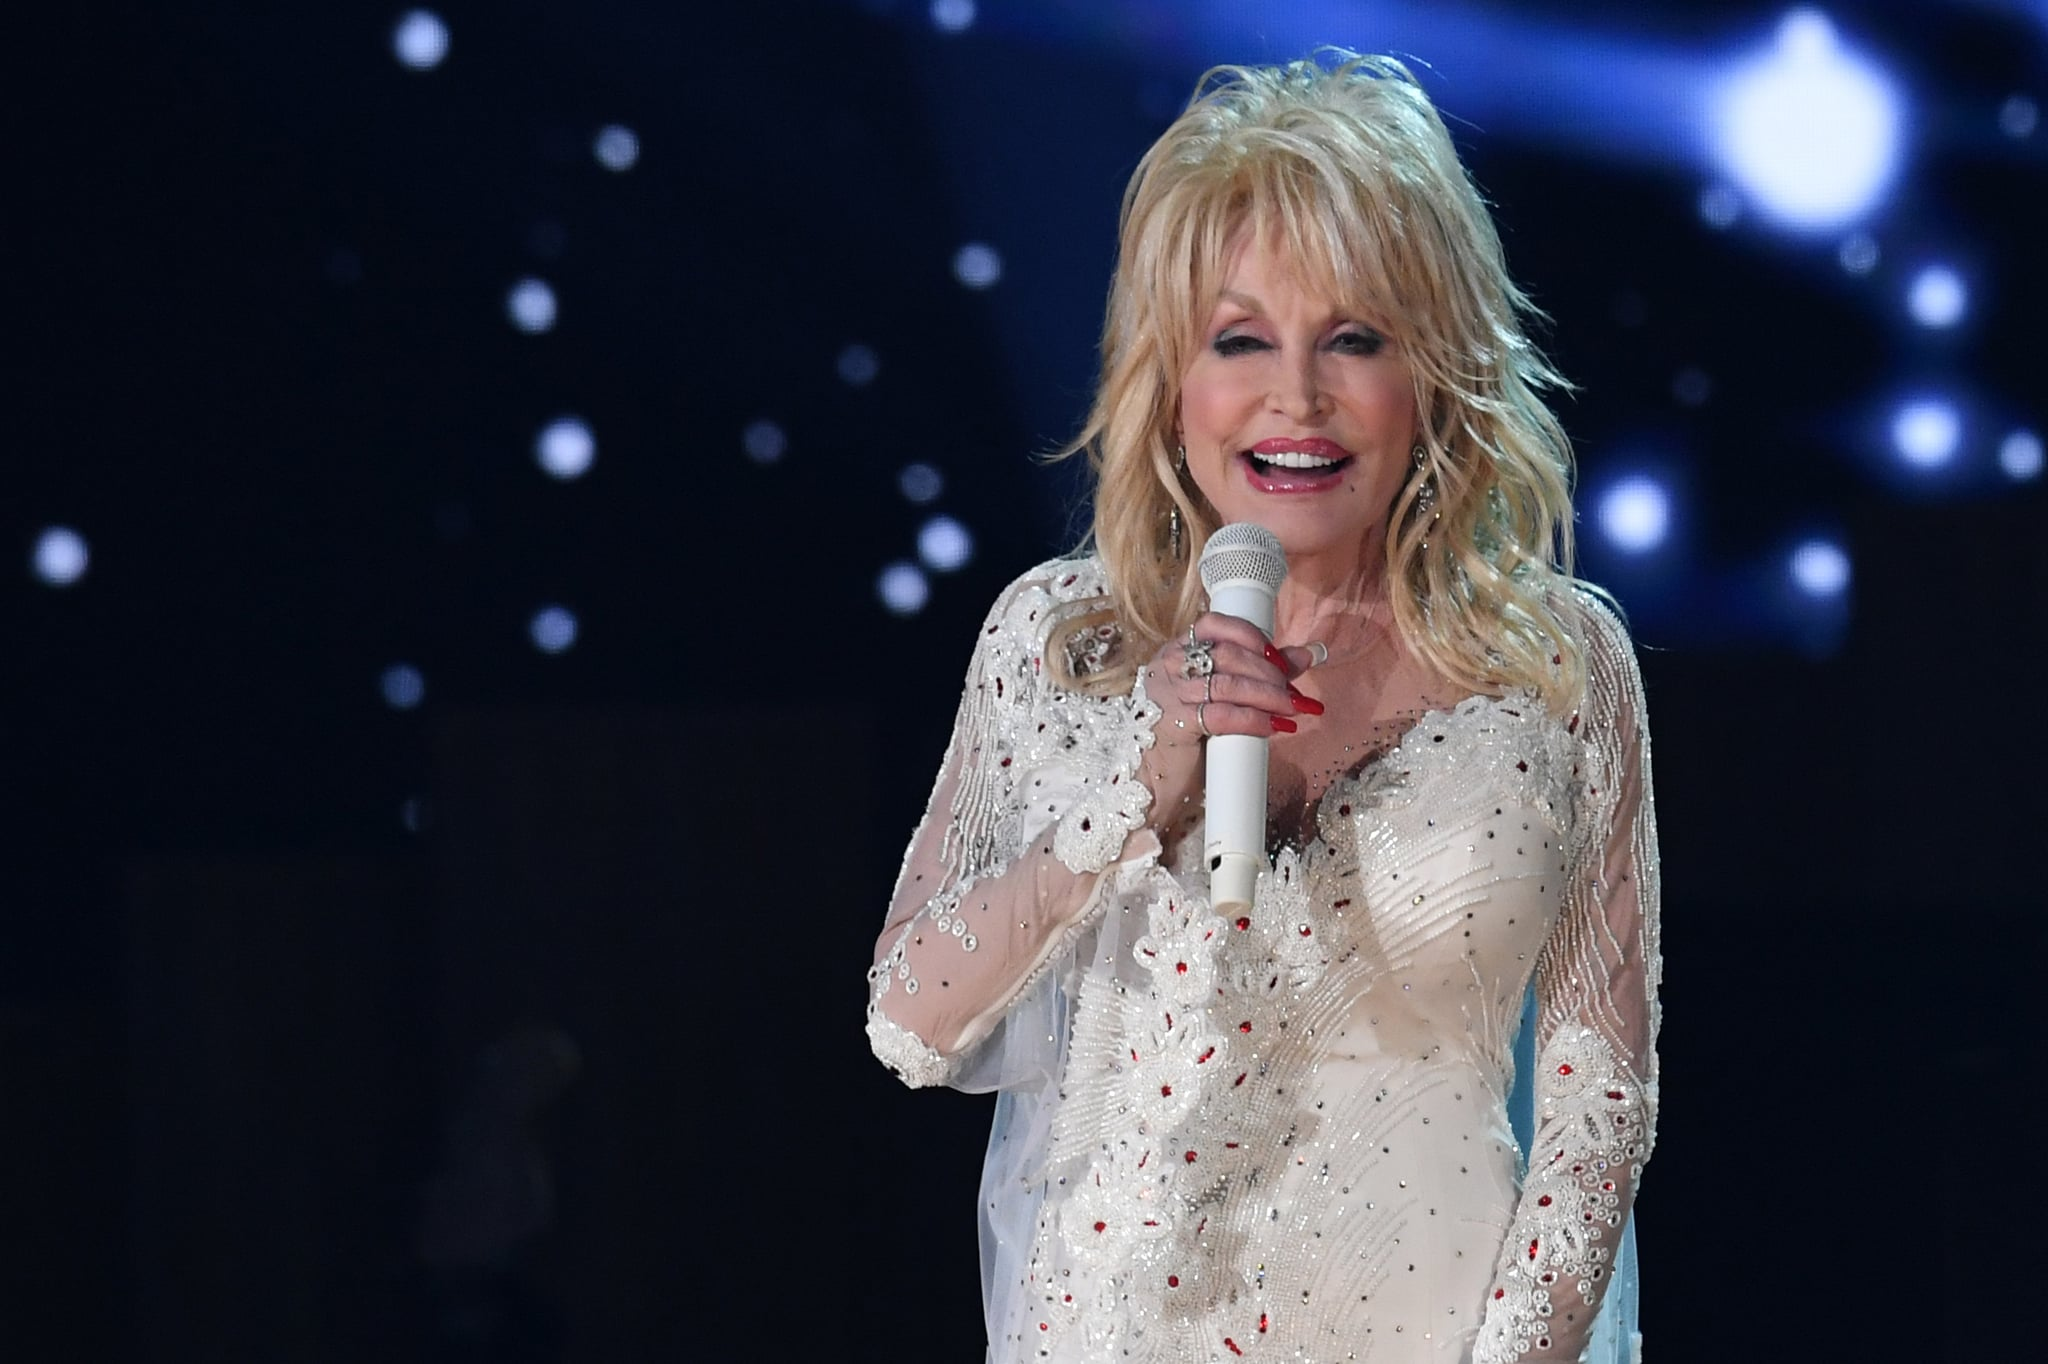 US singer Dolly Parton performs onstage during the 61st Annual Grammy Awards on February 10, 2019, in Los Angeles. (Photo by Robyn Beck / AFP) (Photo by ROBYN BECK/AFP via Getty Images)